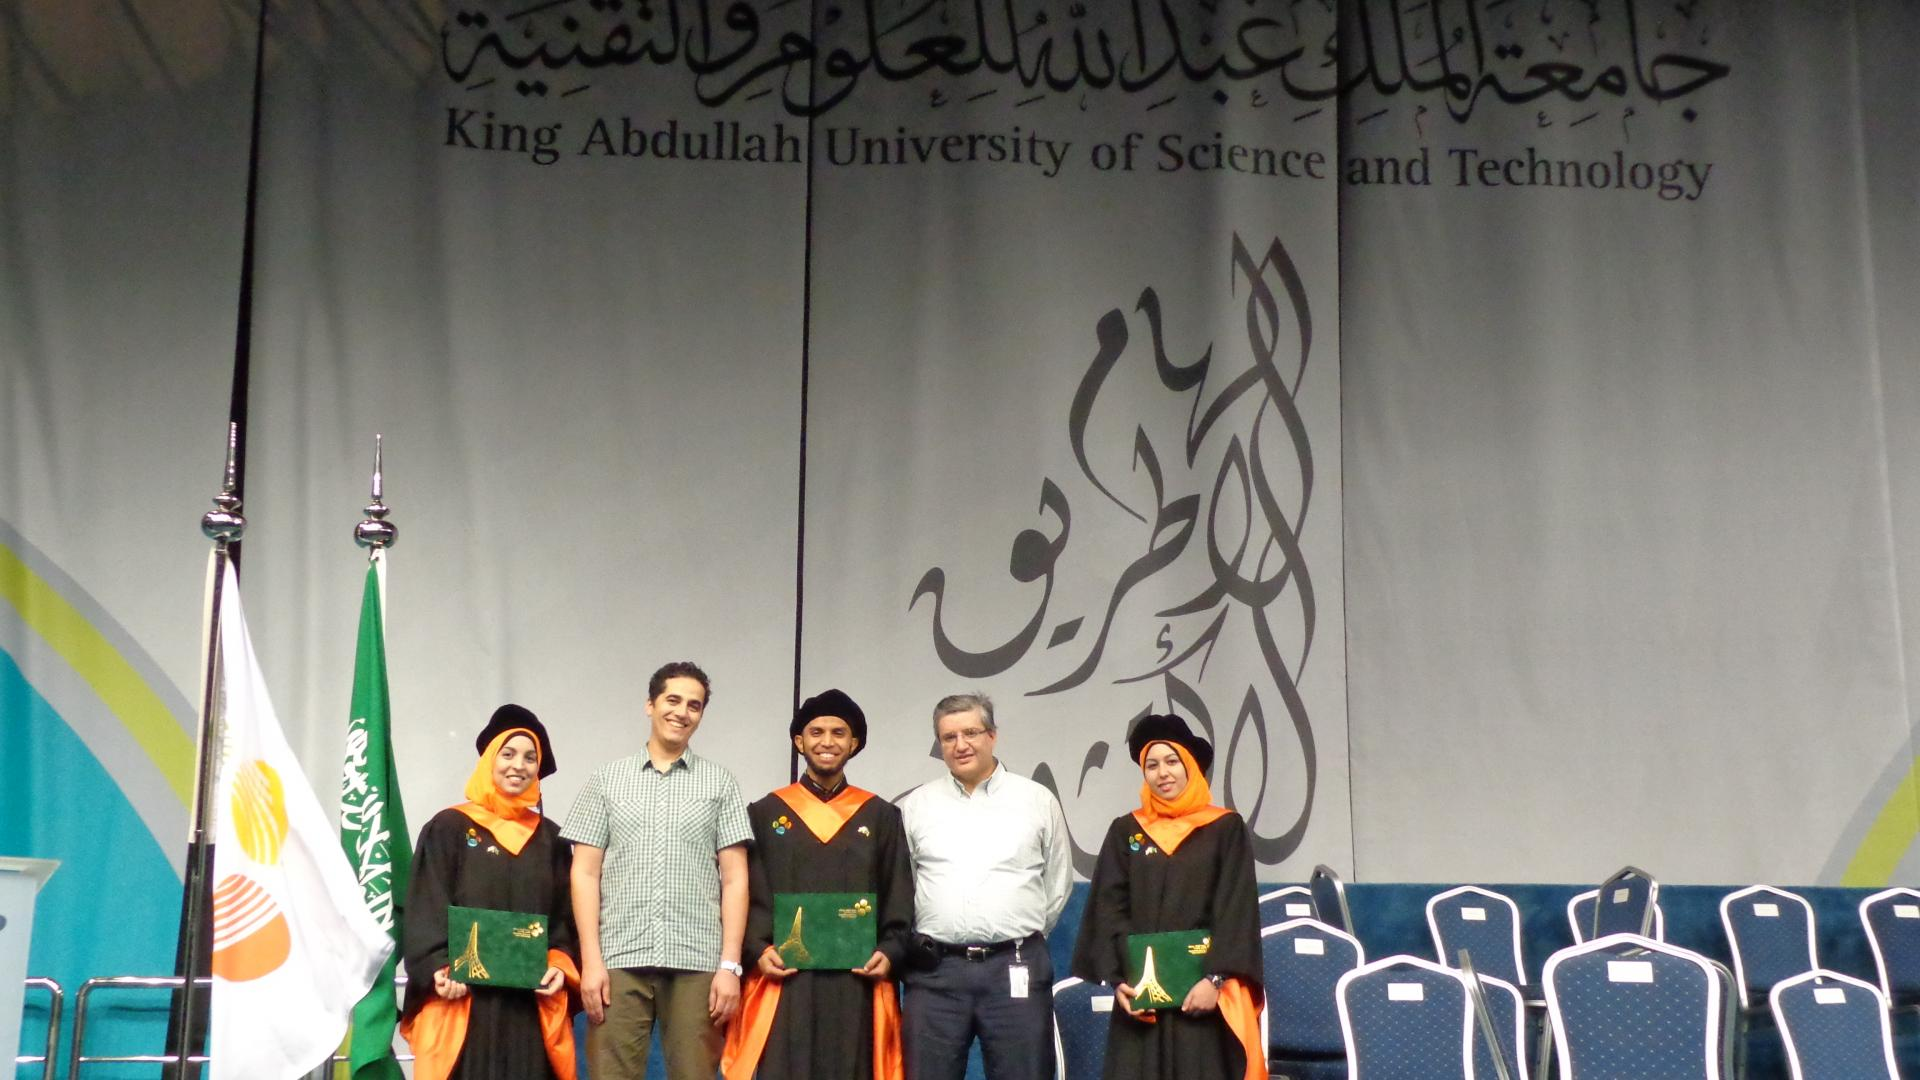 Amal Hyadi, Lokman Sboui and Fatma Benkhelifa With Professor Slim-Alouini and Zouheir Rezki On Their Graduation